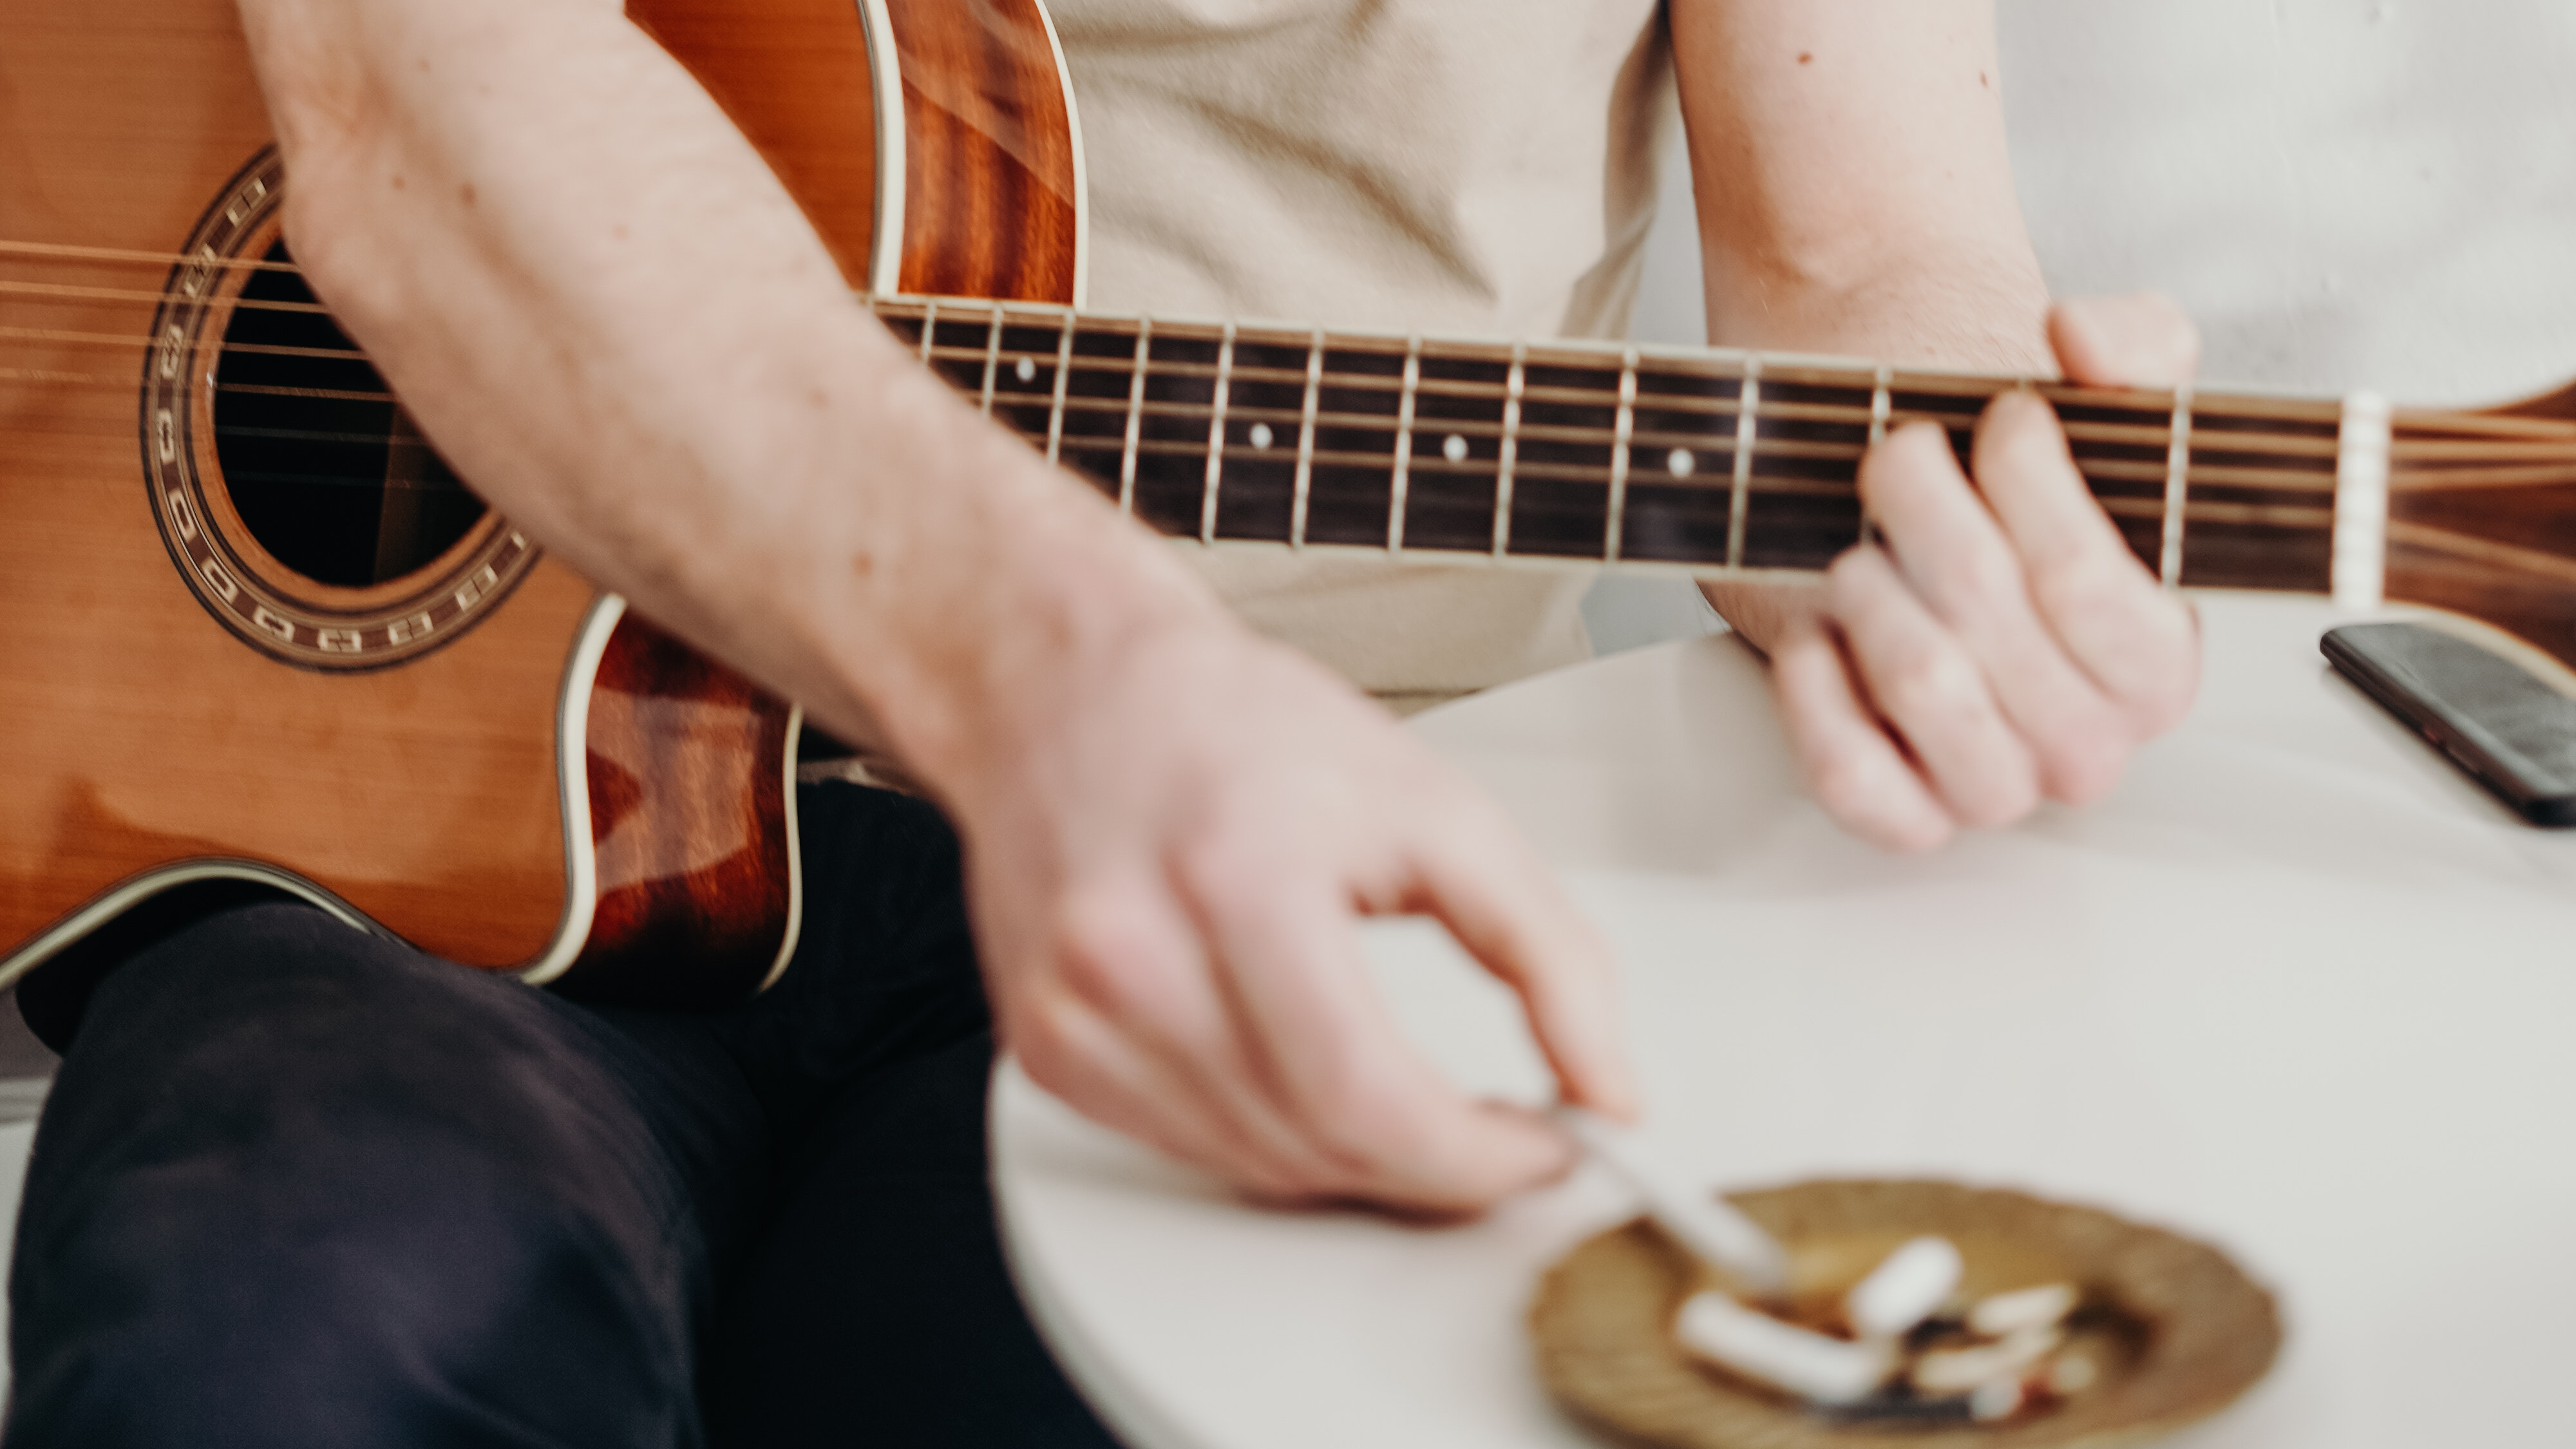 A man holding a guitar and a cigarette